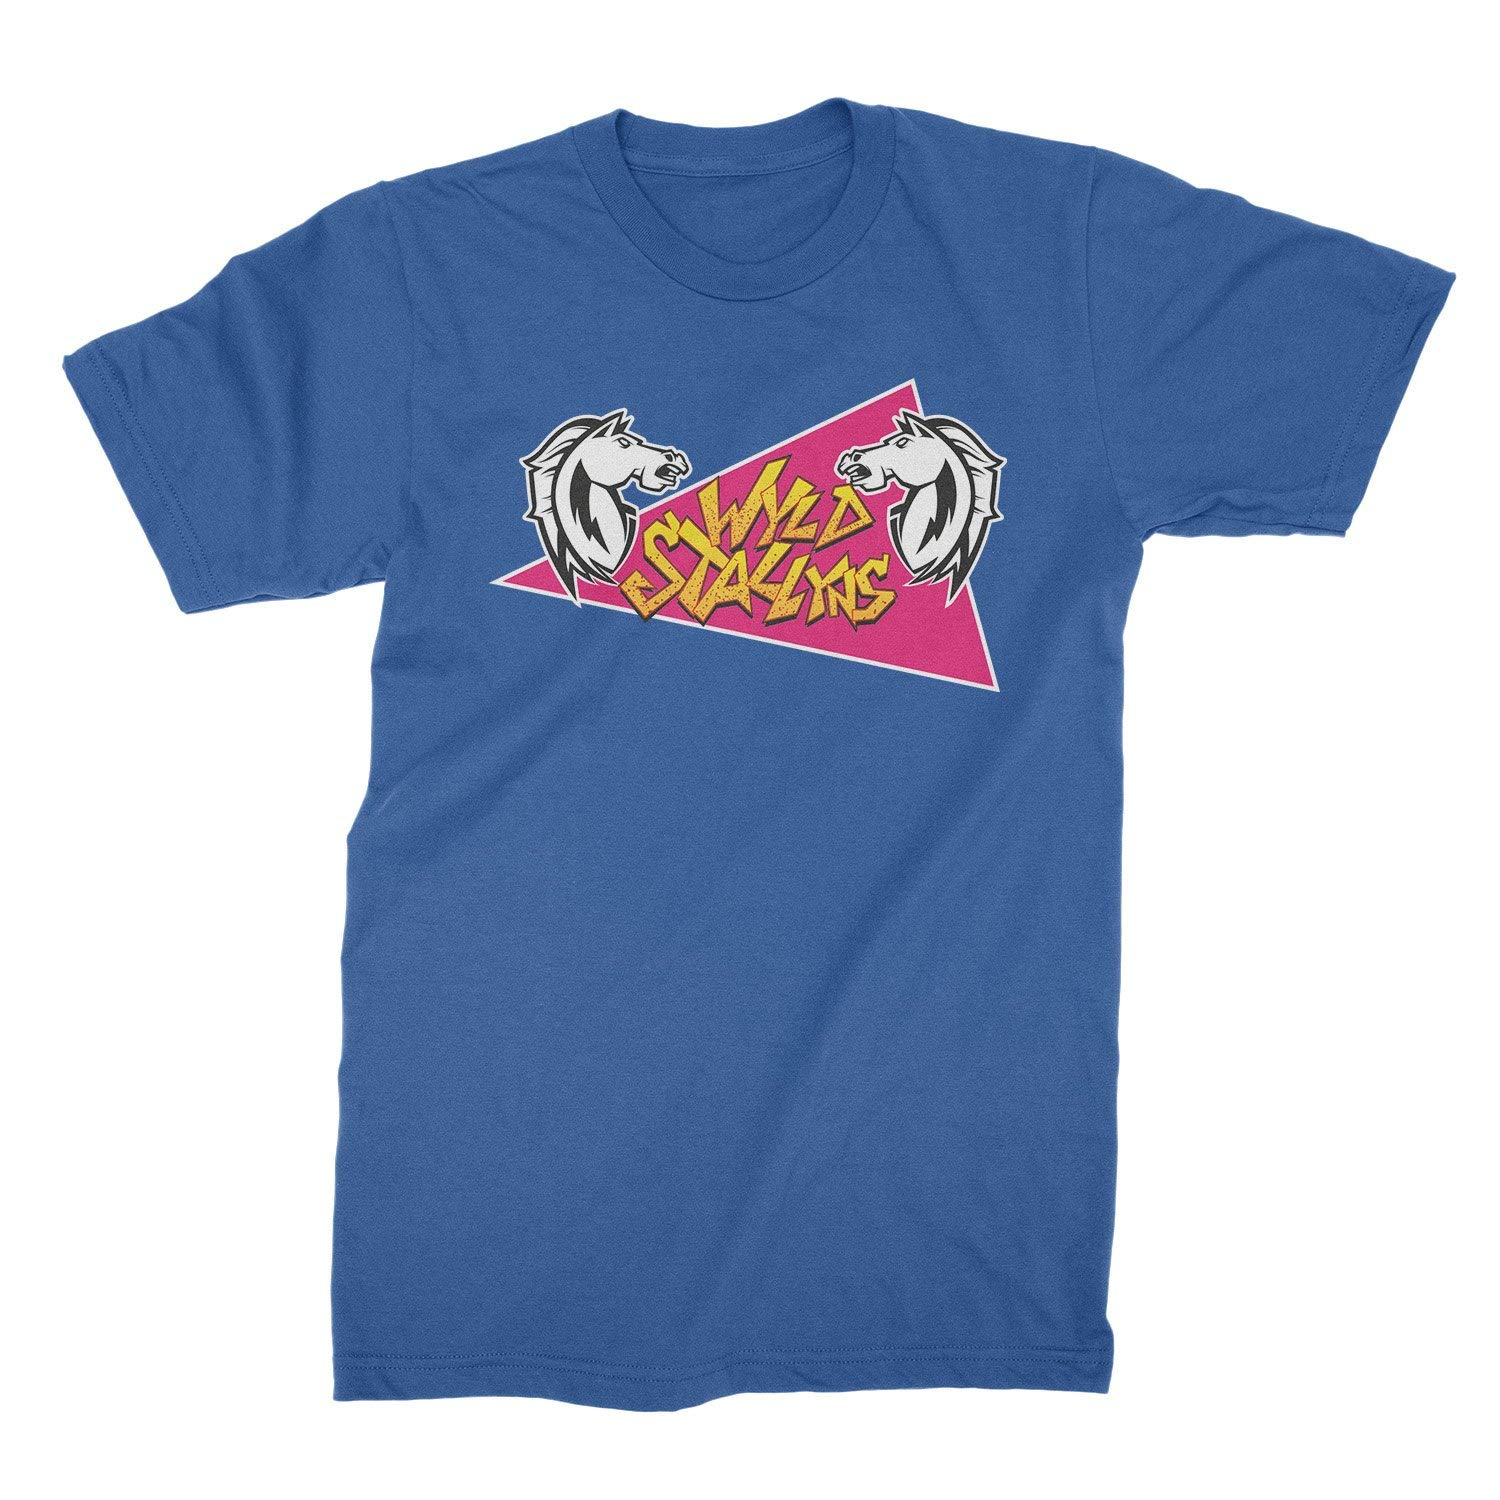 We Got Good Wyld Stallyns T Shirt Be Excellent To Each Other T Shirt